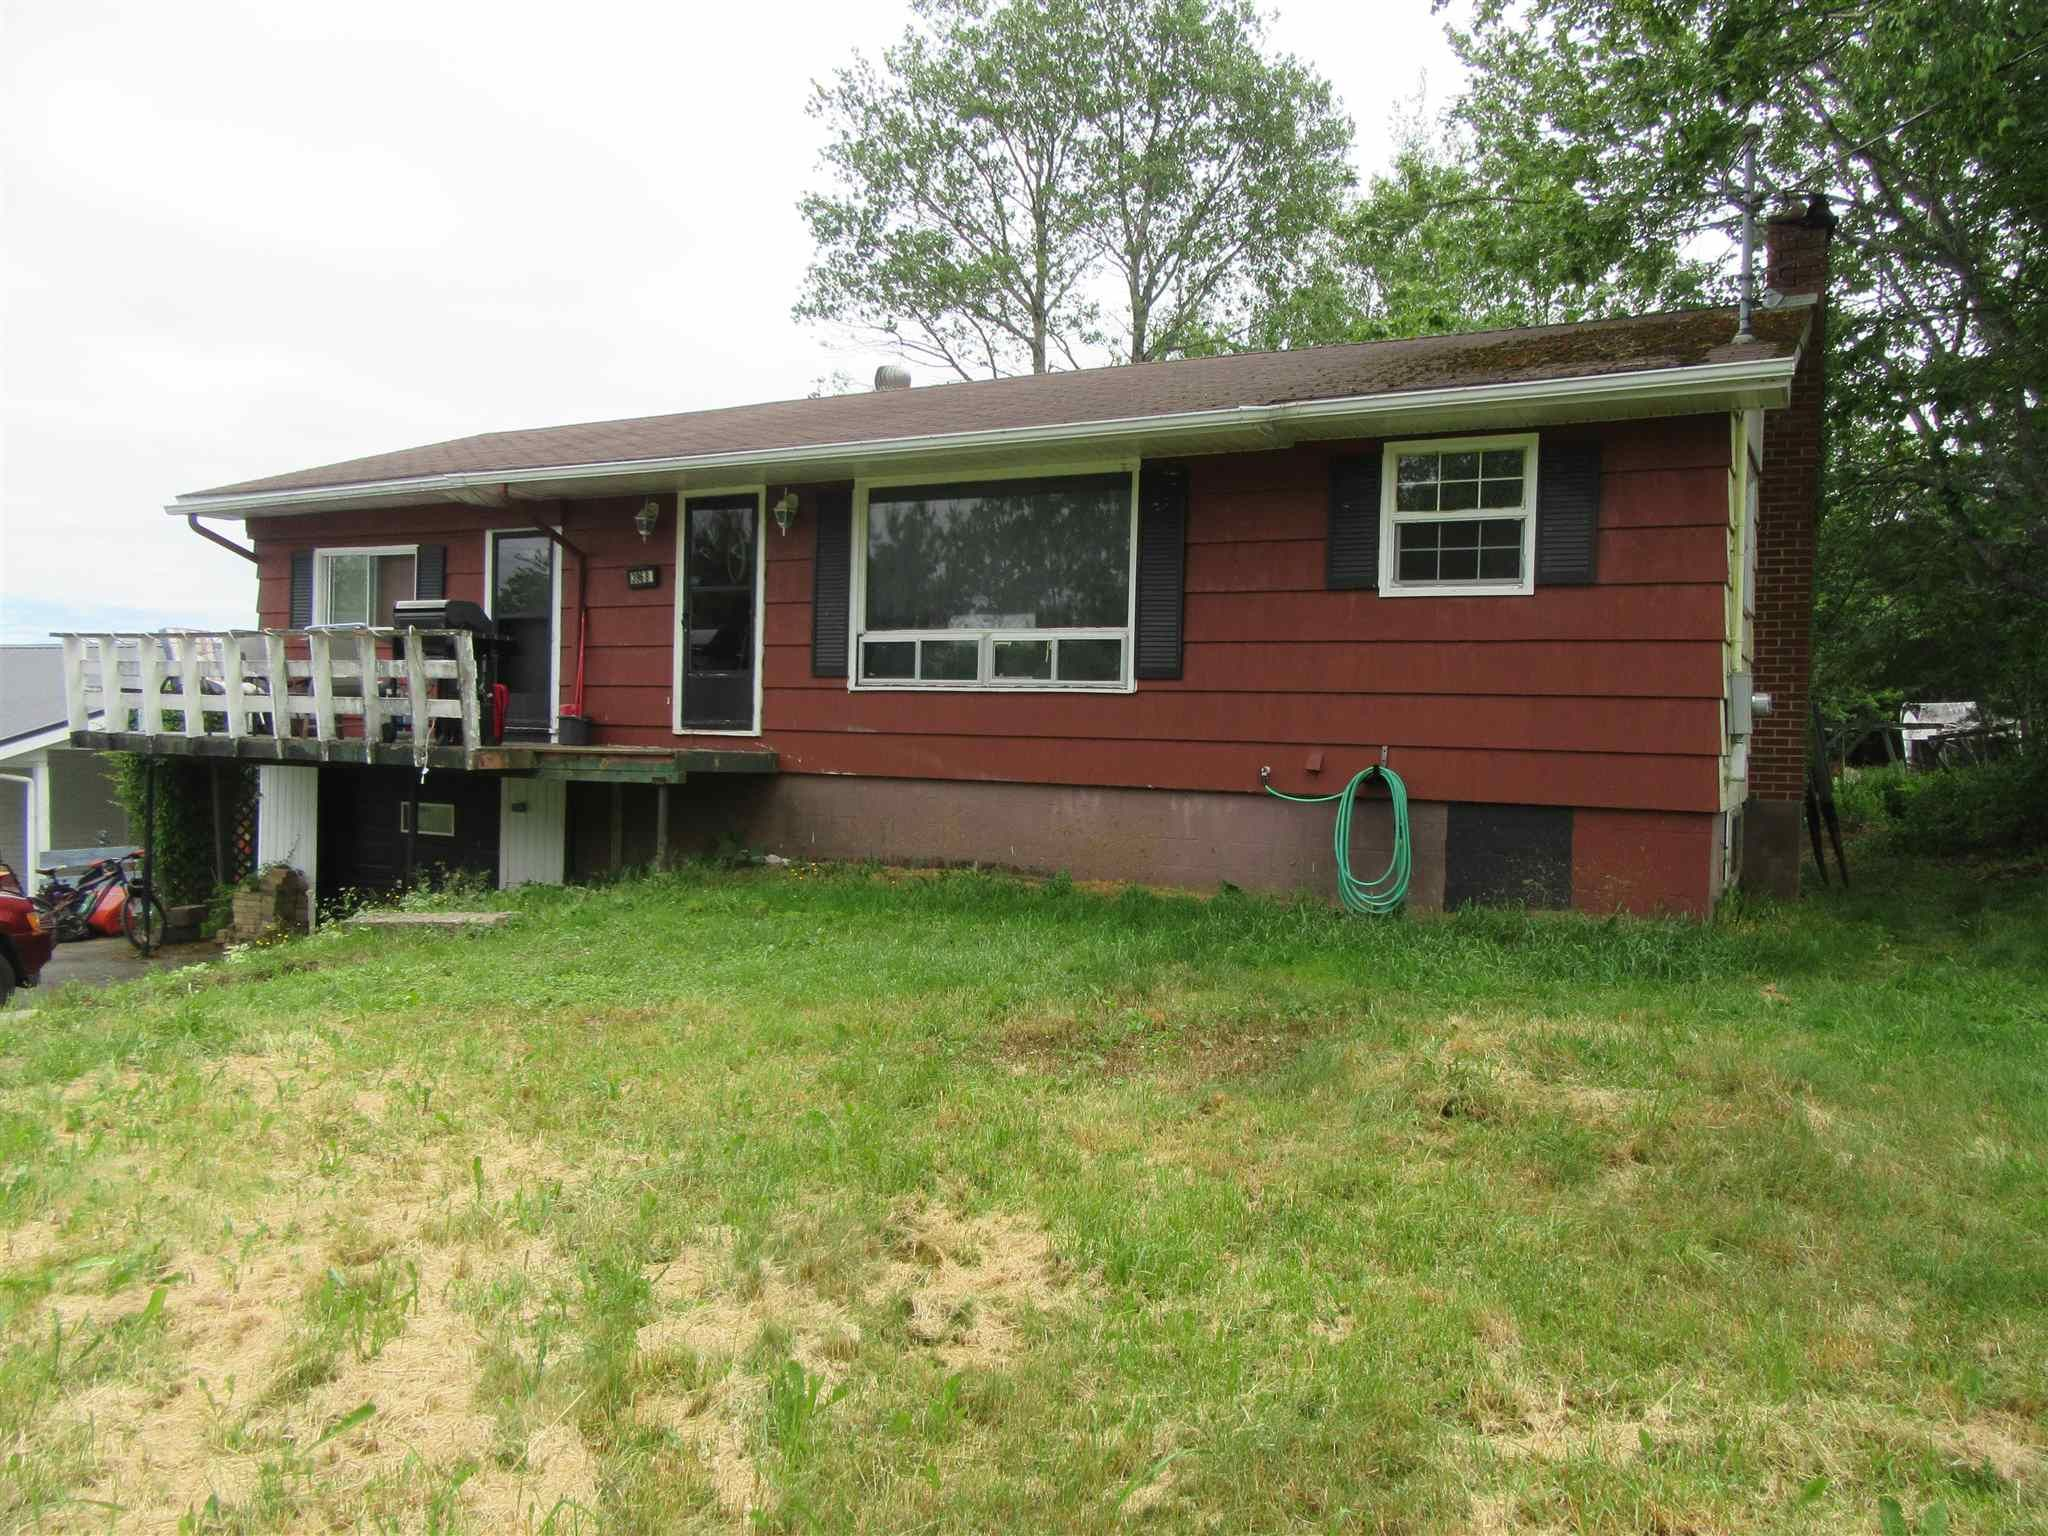 Main Photo: 3968 Highway 7 in Porters Lake: 31-Lawrencetown, Lake Echo, Porters Lake Residential for sale (Halifax-Dartmouth)  : MLS®# 202117111